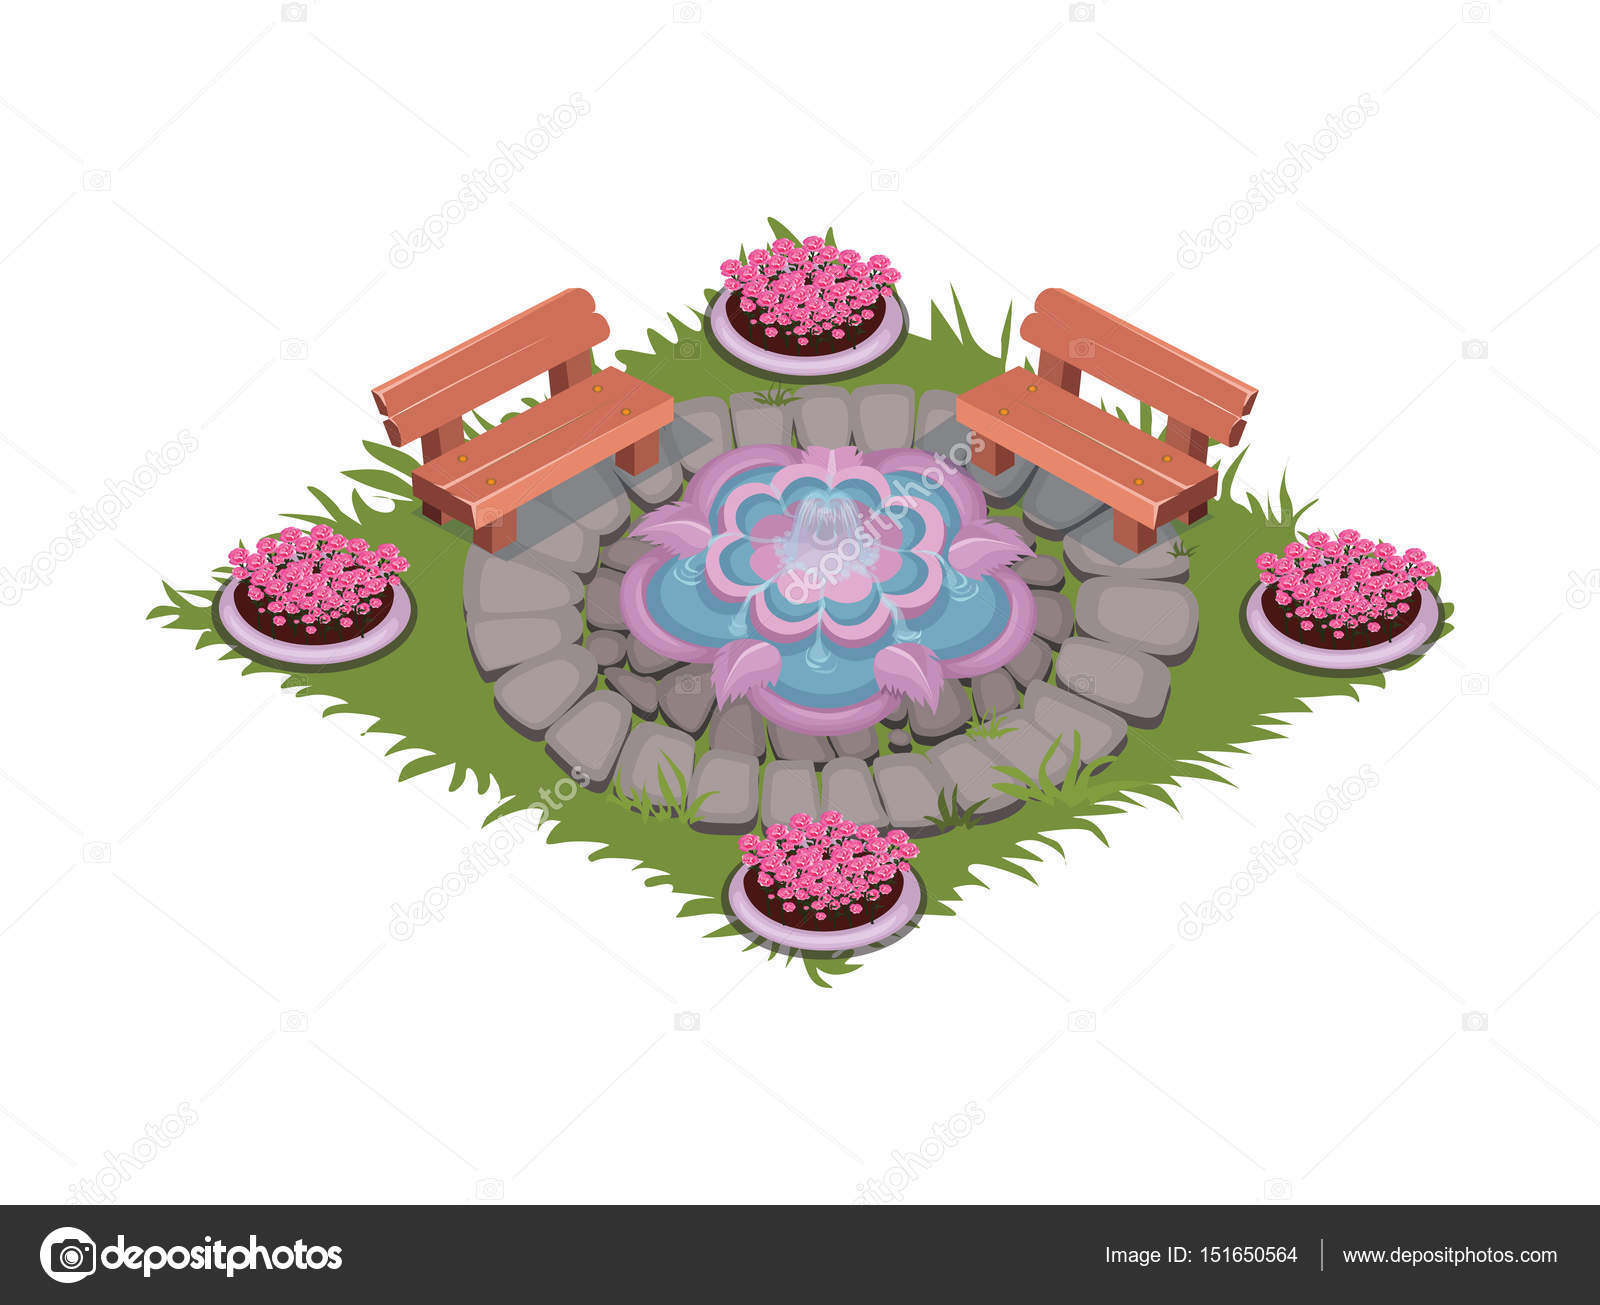 Isometric Cartoon Paved Square Patio With Fountain Benches And Flowerbeds Stock Vector C Loud Mango 151650564